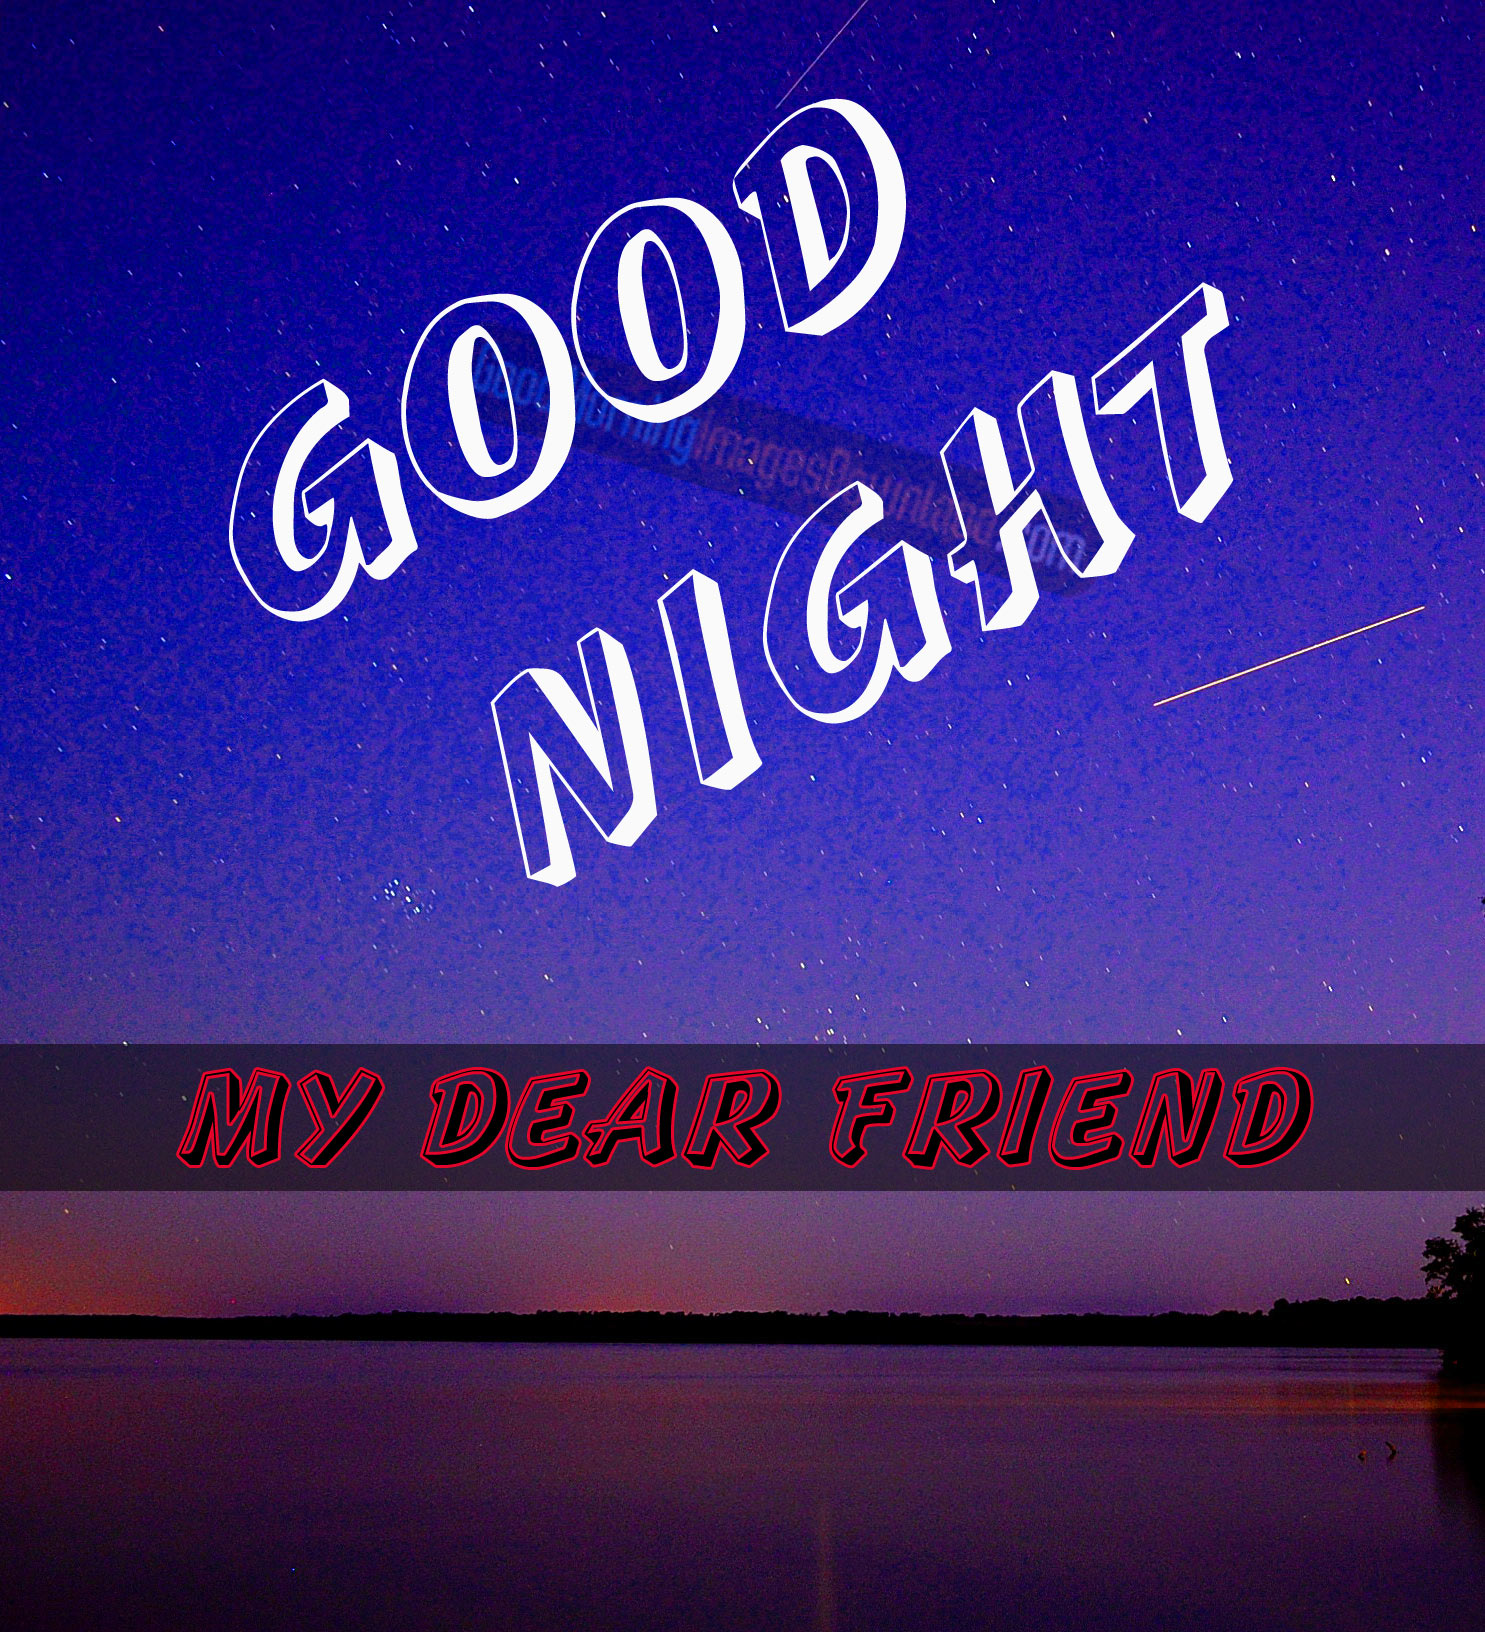 3D Good Night Images Wallpaper for Whatsap